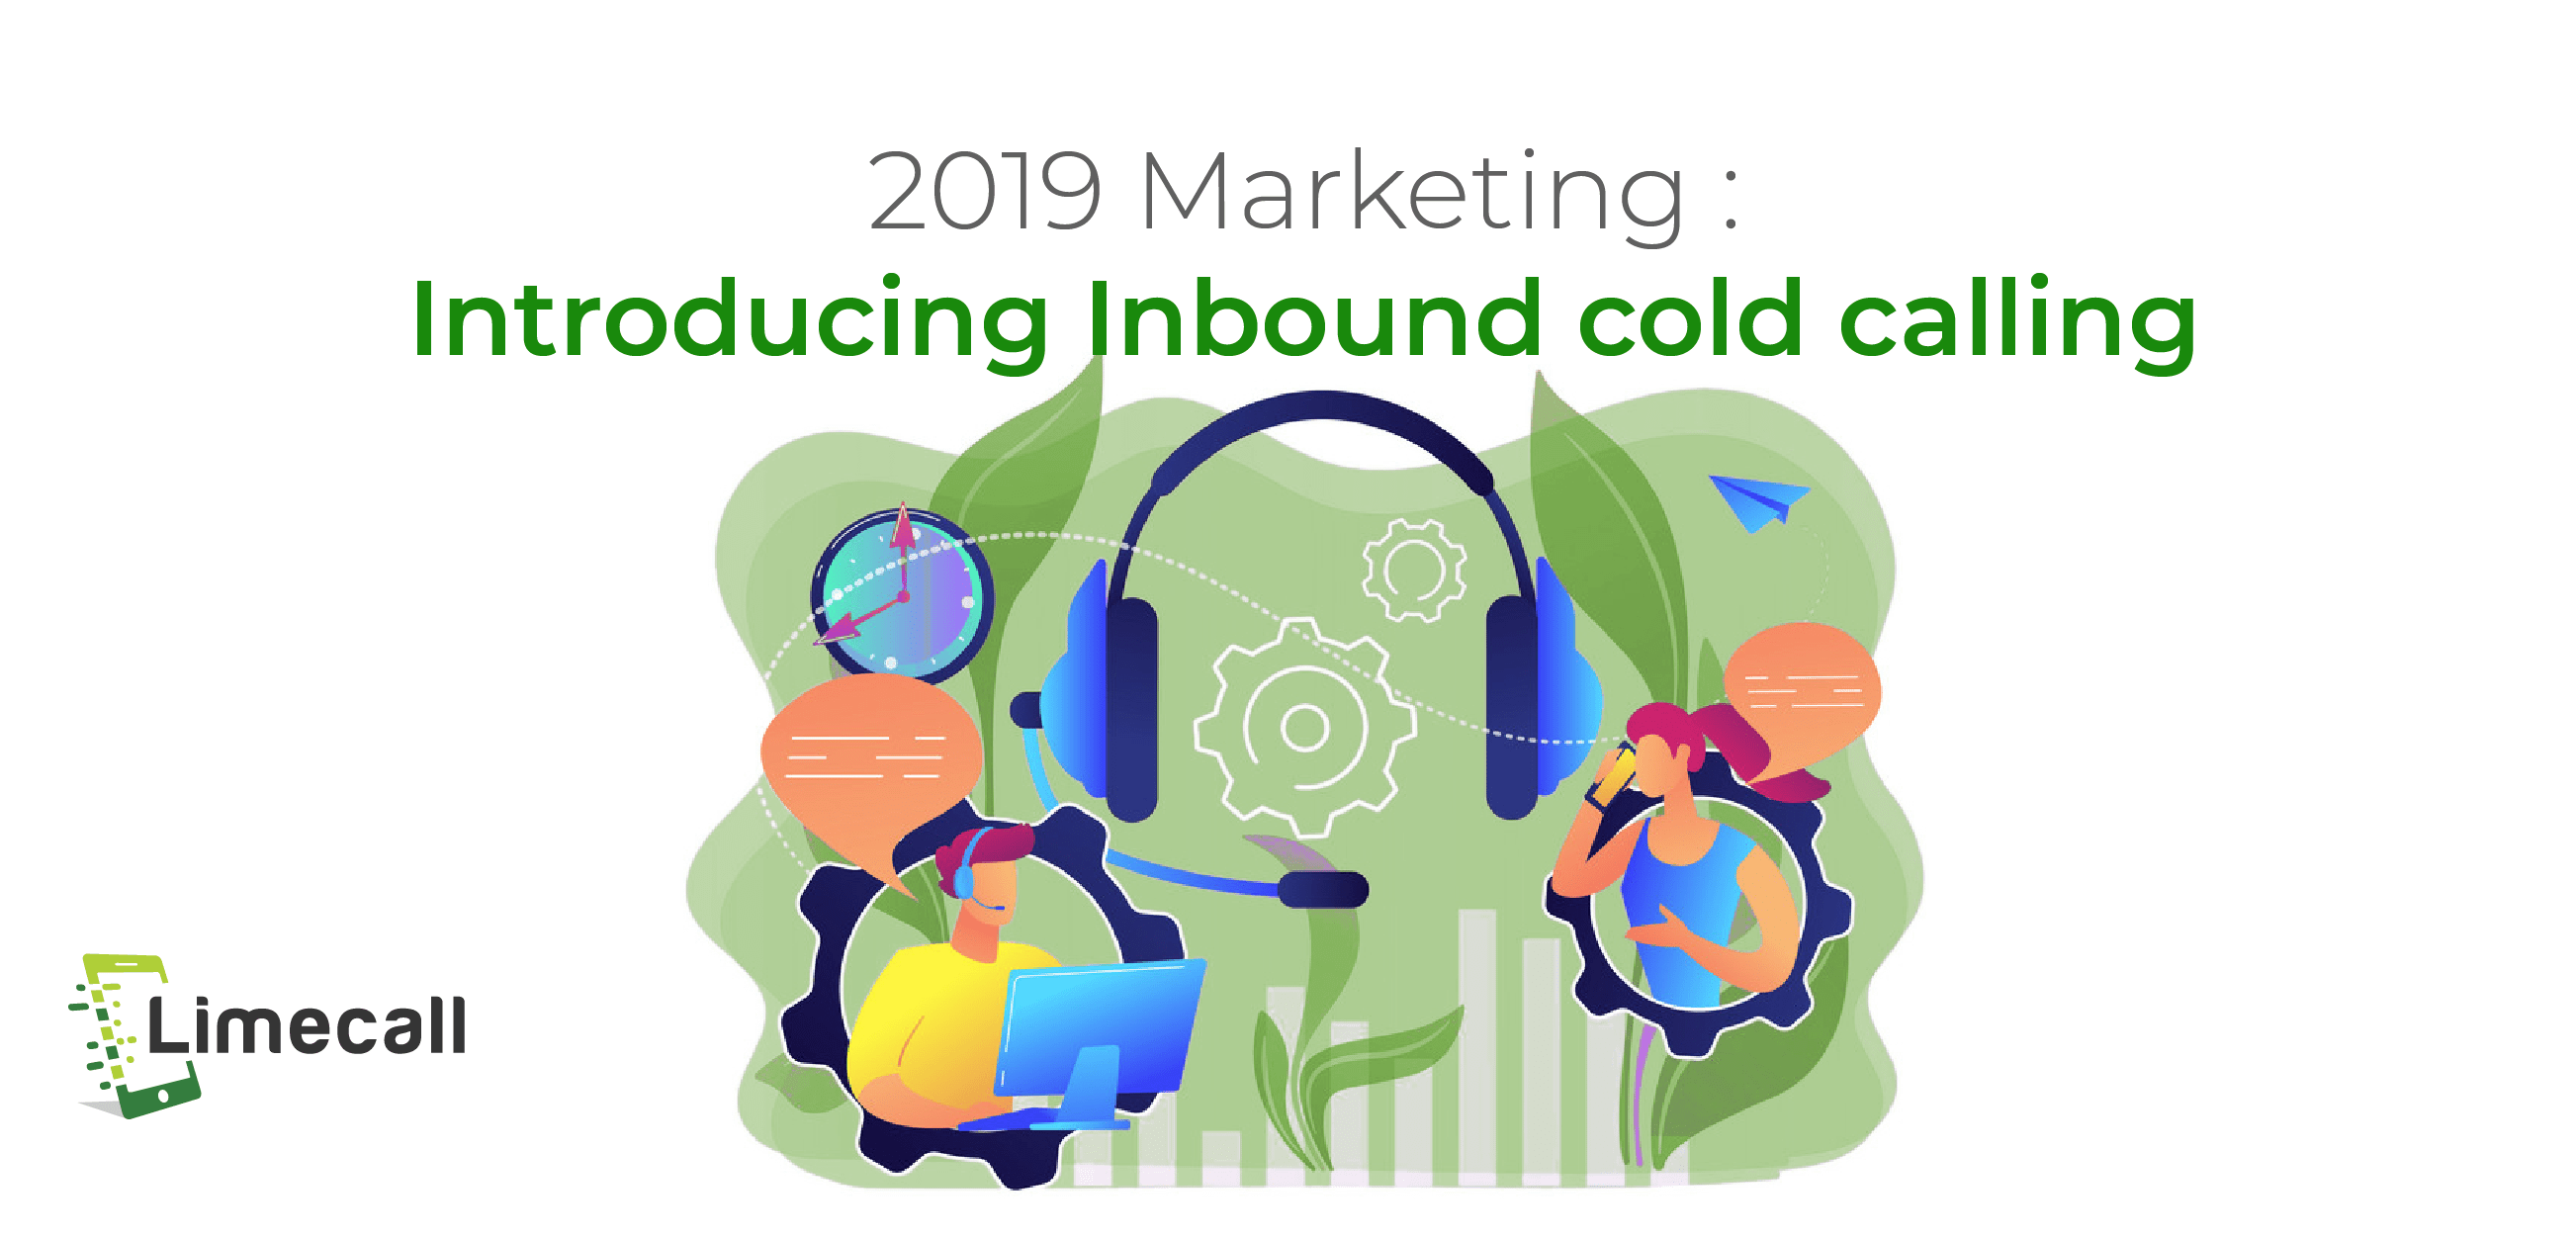 2019 Marketing : Introducing Inbound cold calling